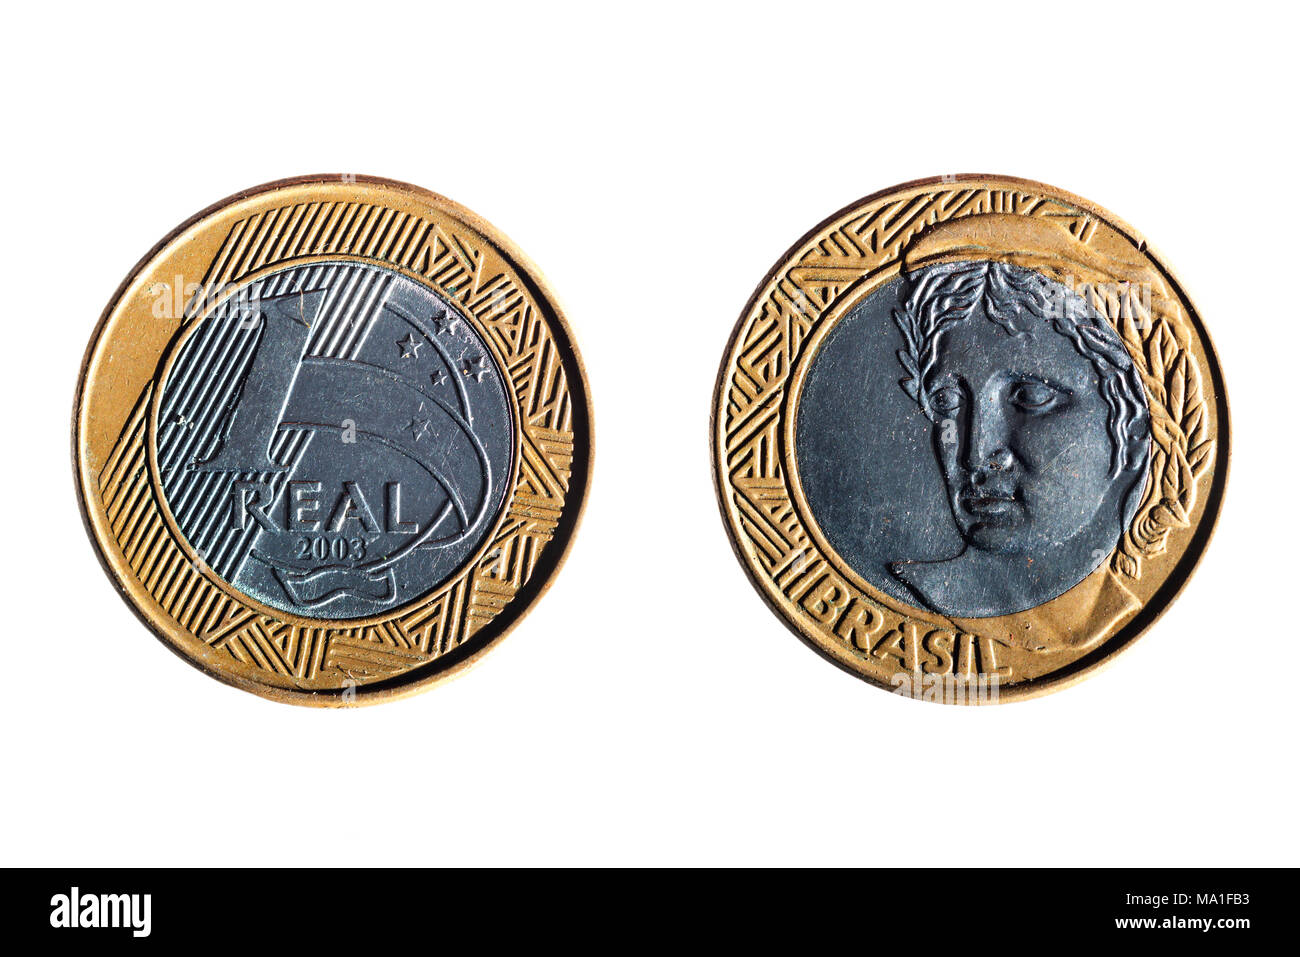 front and back of a brazilian real coin on white background - Stock Image